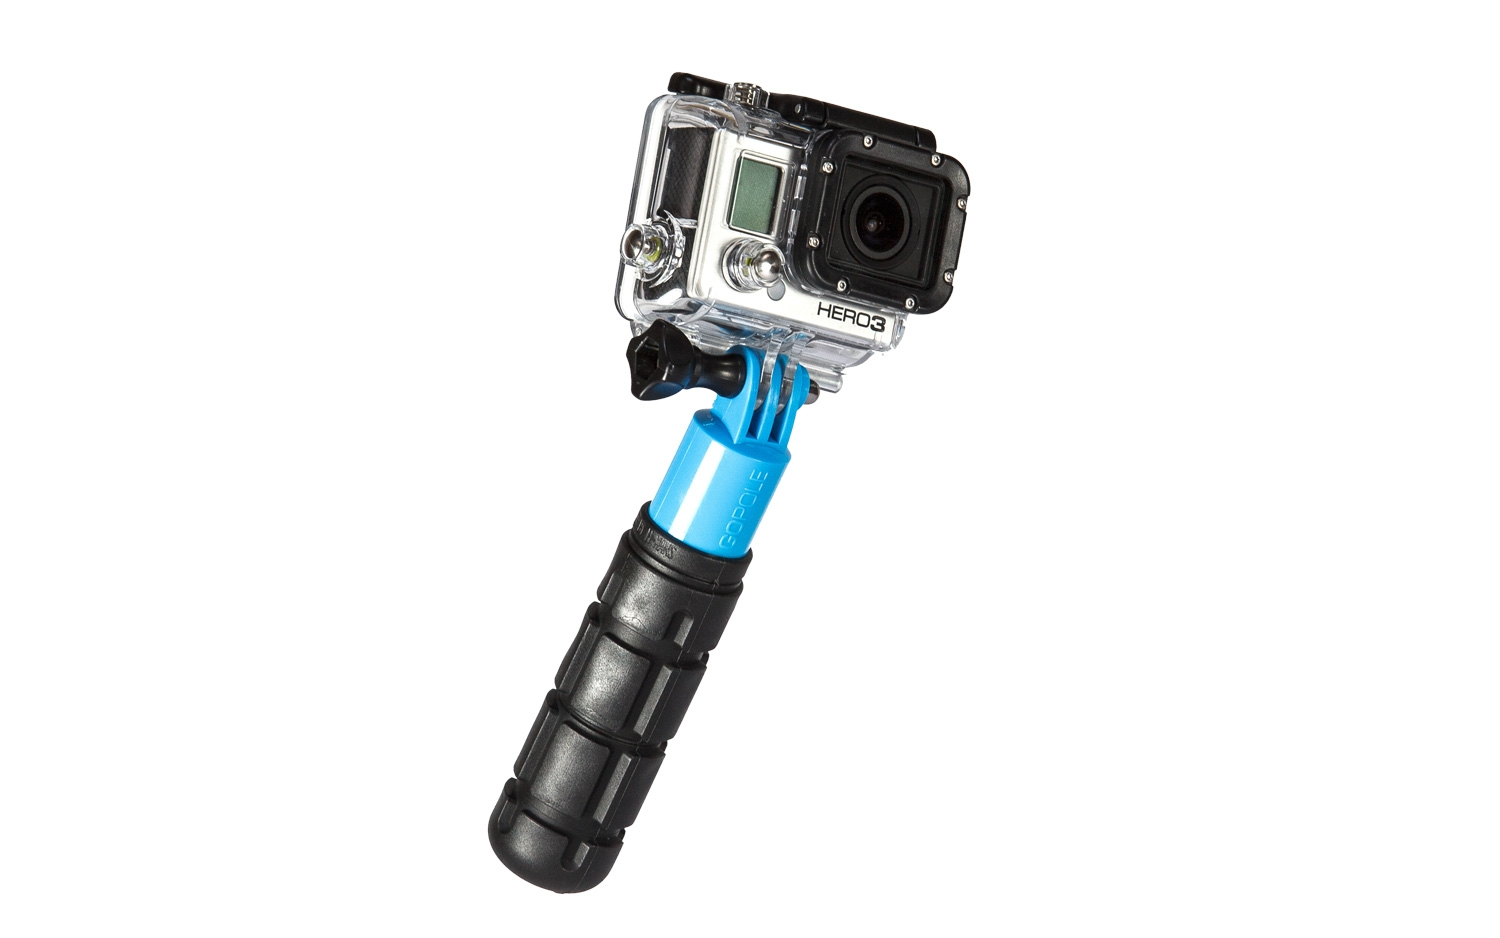 Grenade Grip Compact Hand Grip for GoPro